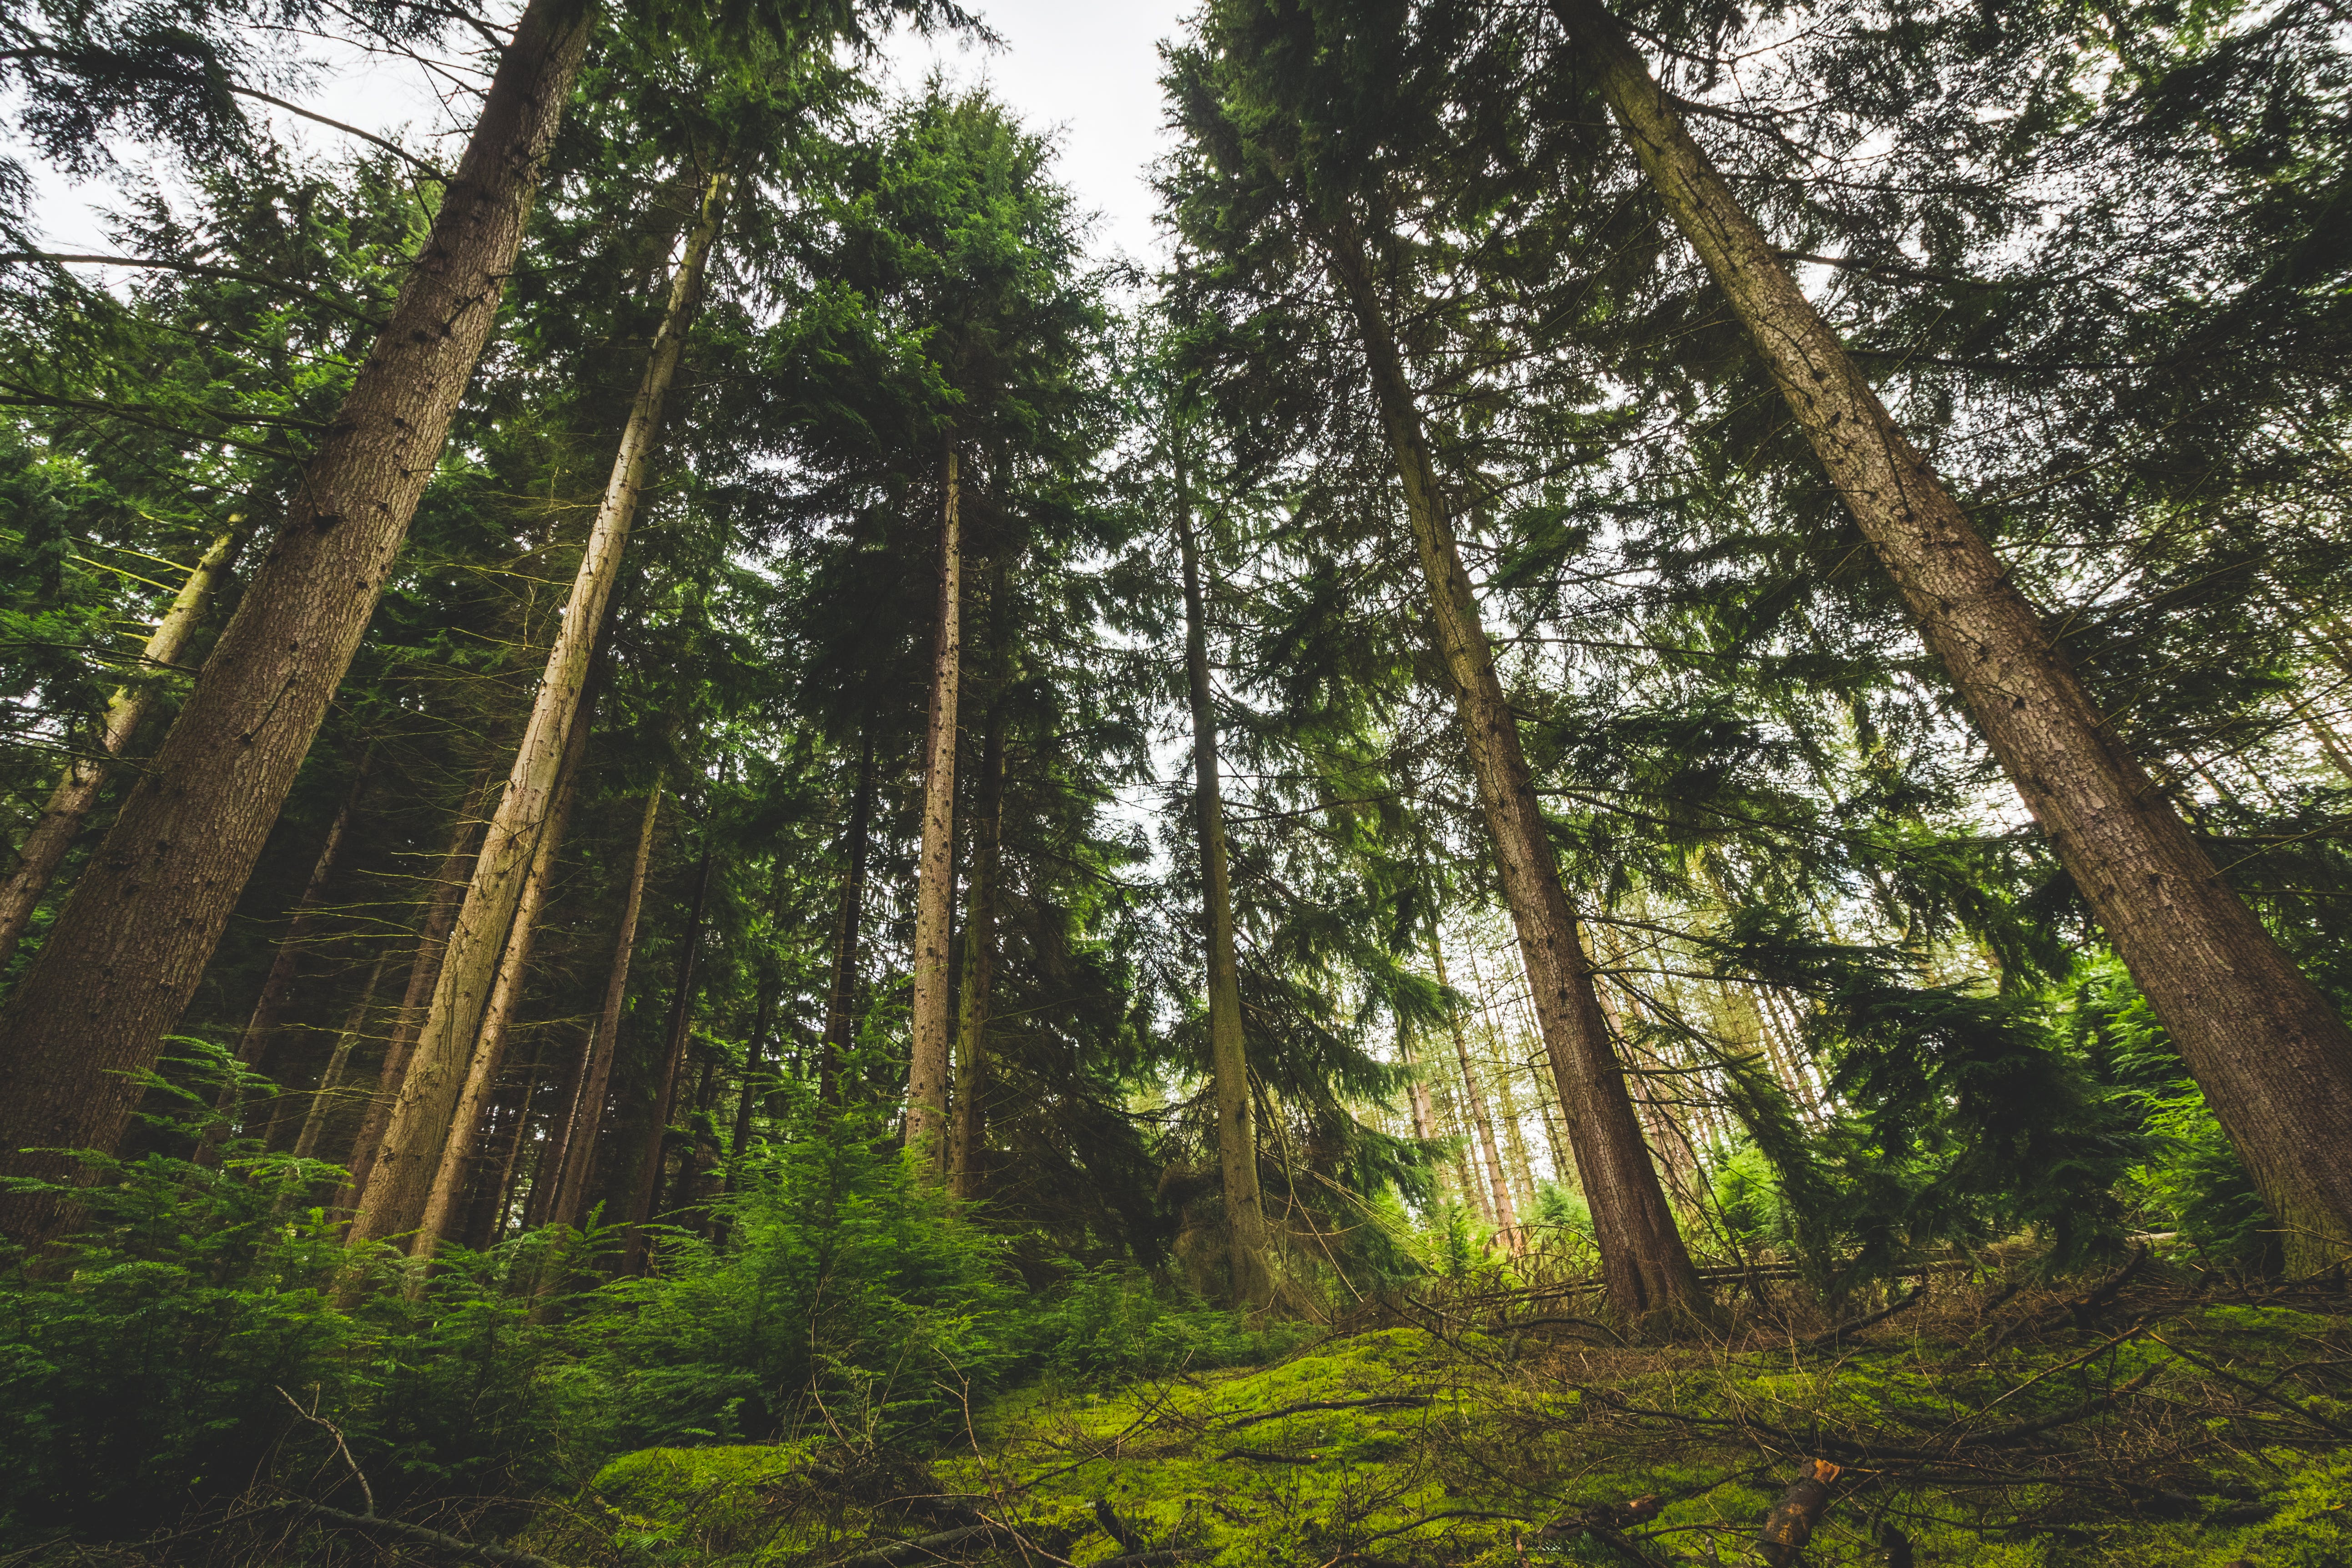 Low Angle View of Trees on Forest